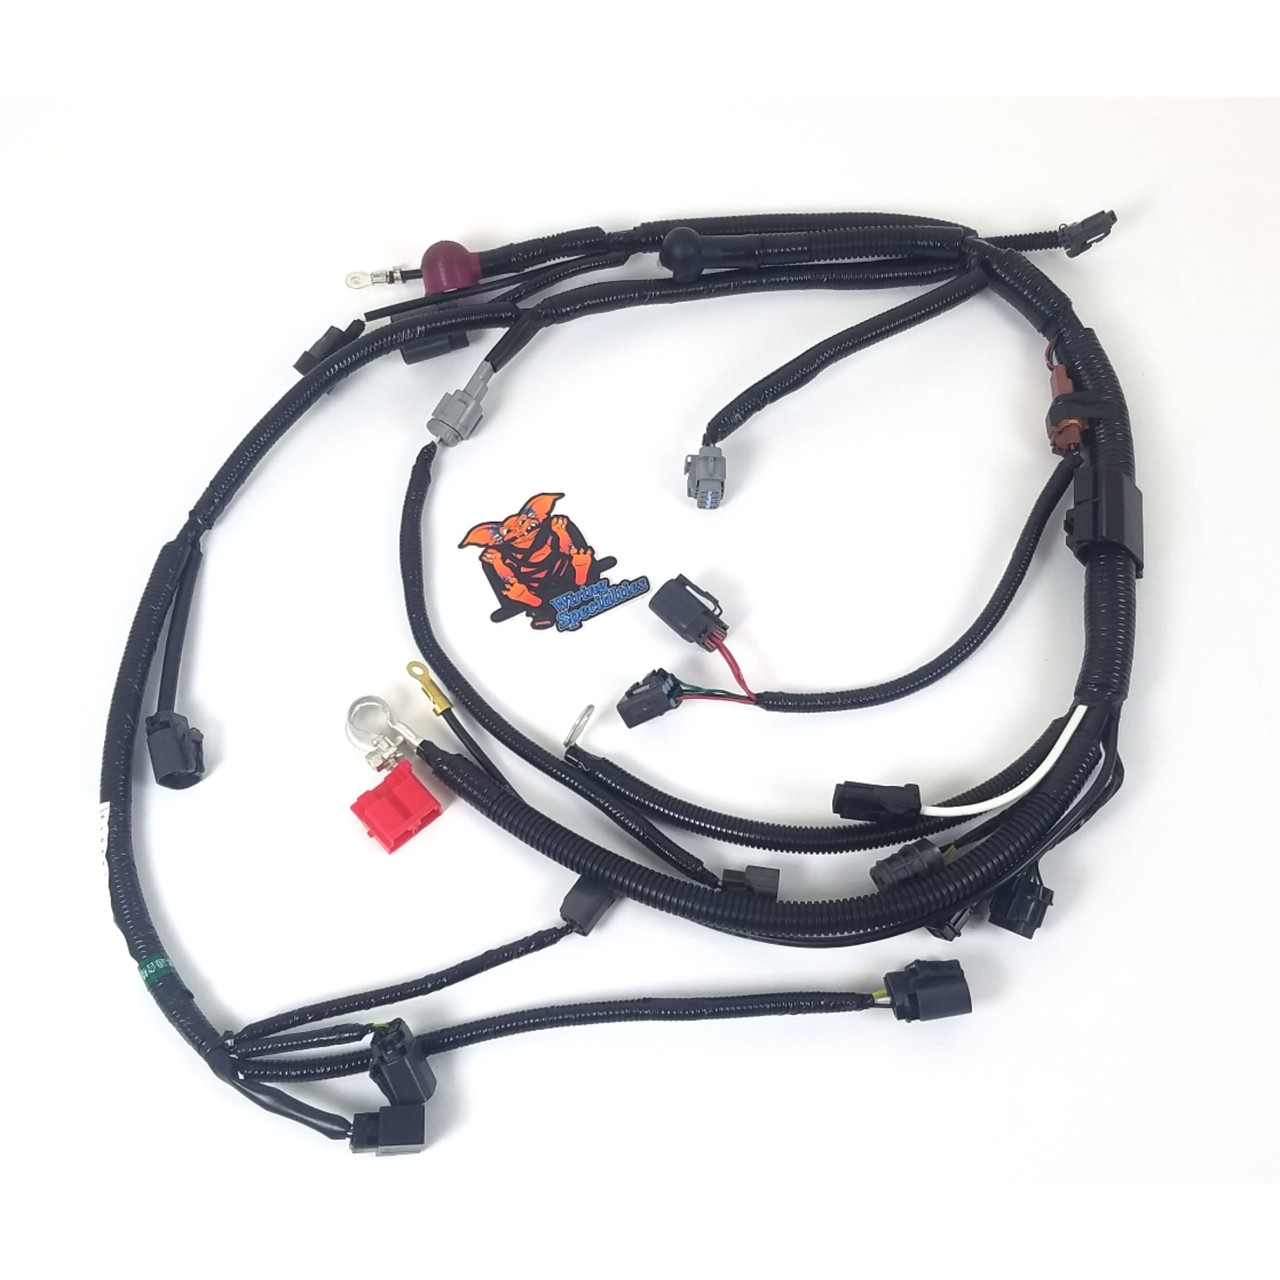 wiring specialties s14 ka24de lower harness for 240sx s14 enjuku racing parts llc [ 1280 x 1280 Pixel ]